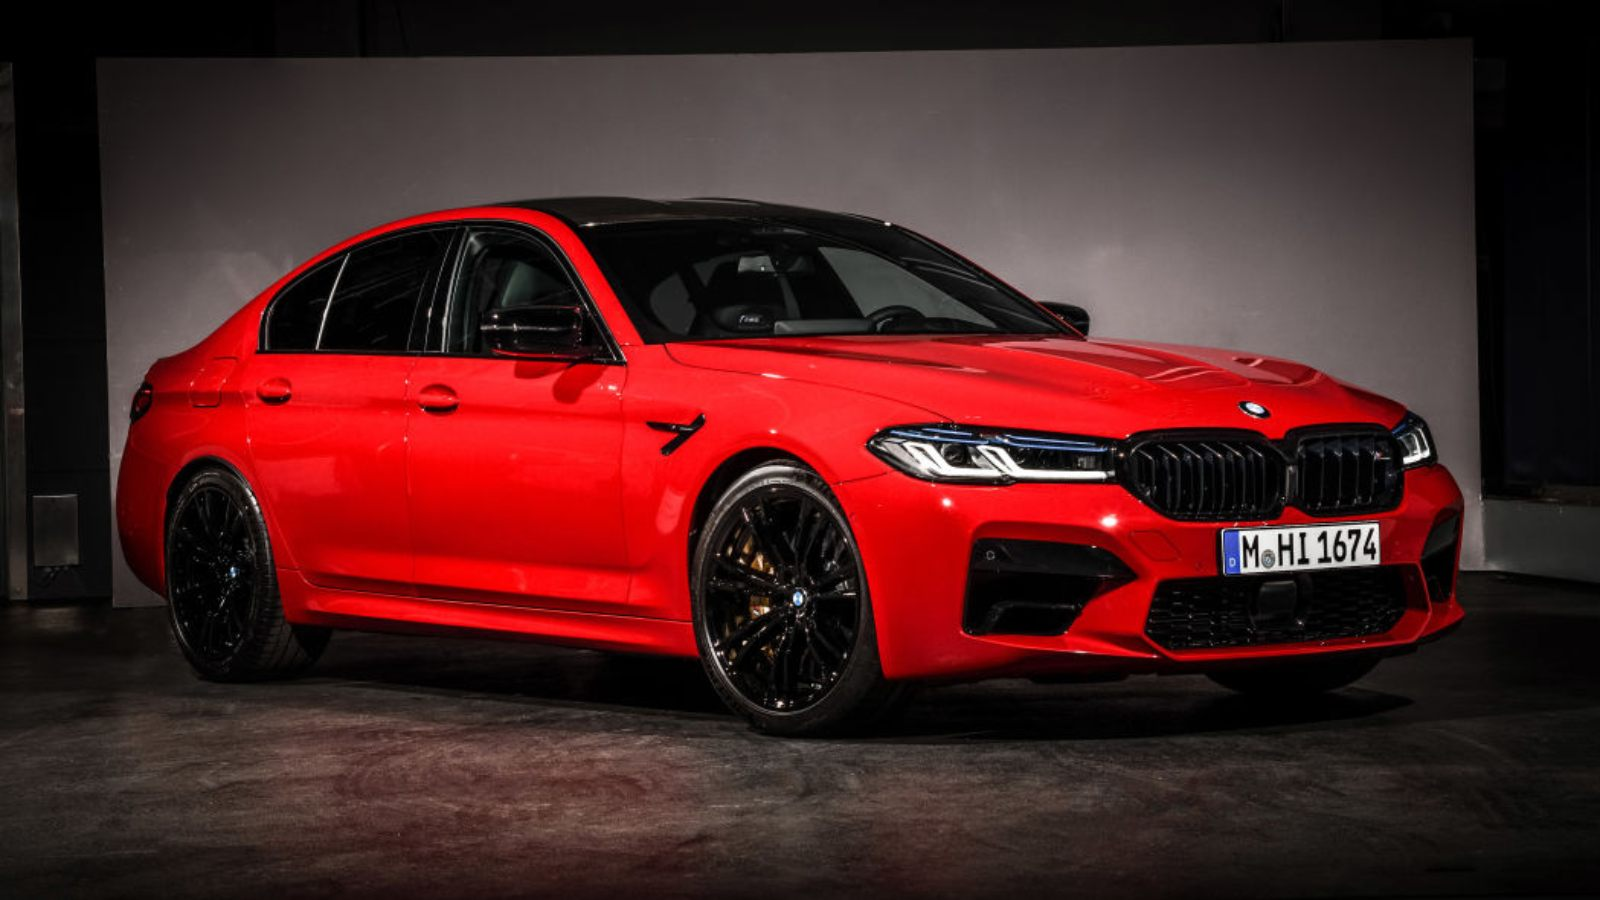 Bmw M5 Facelift Unveiled With Fresh Styling Motoroids